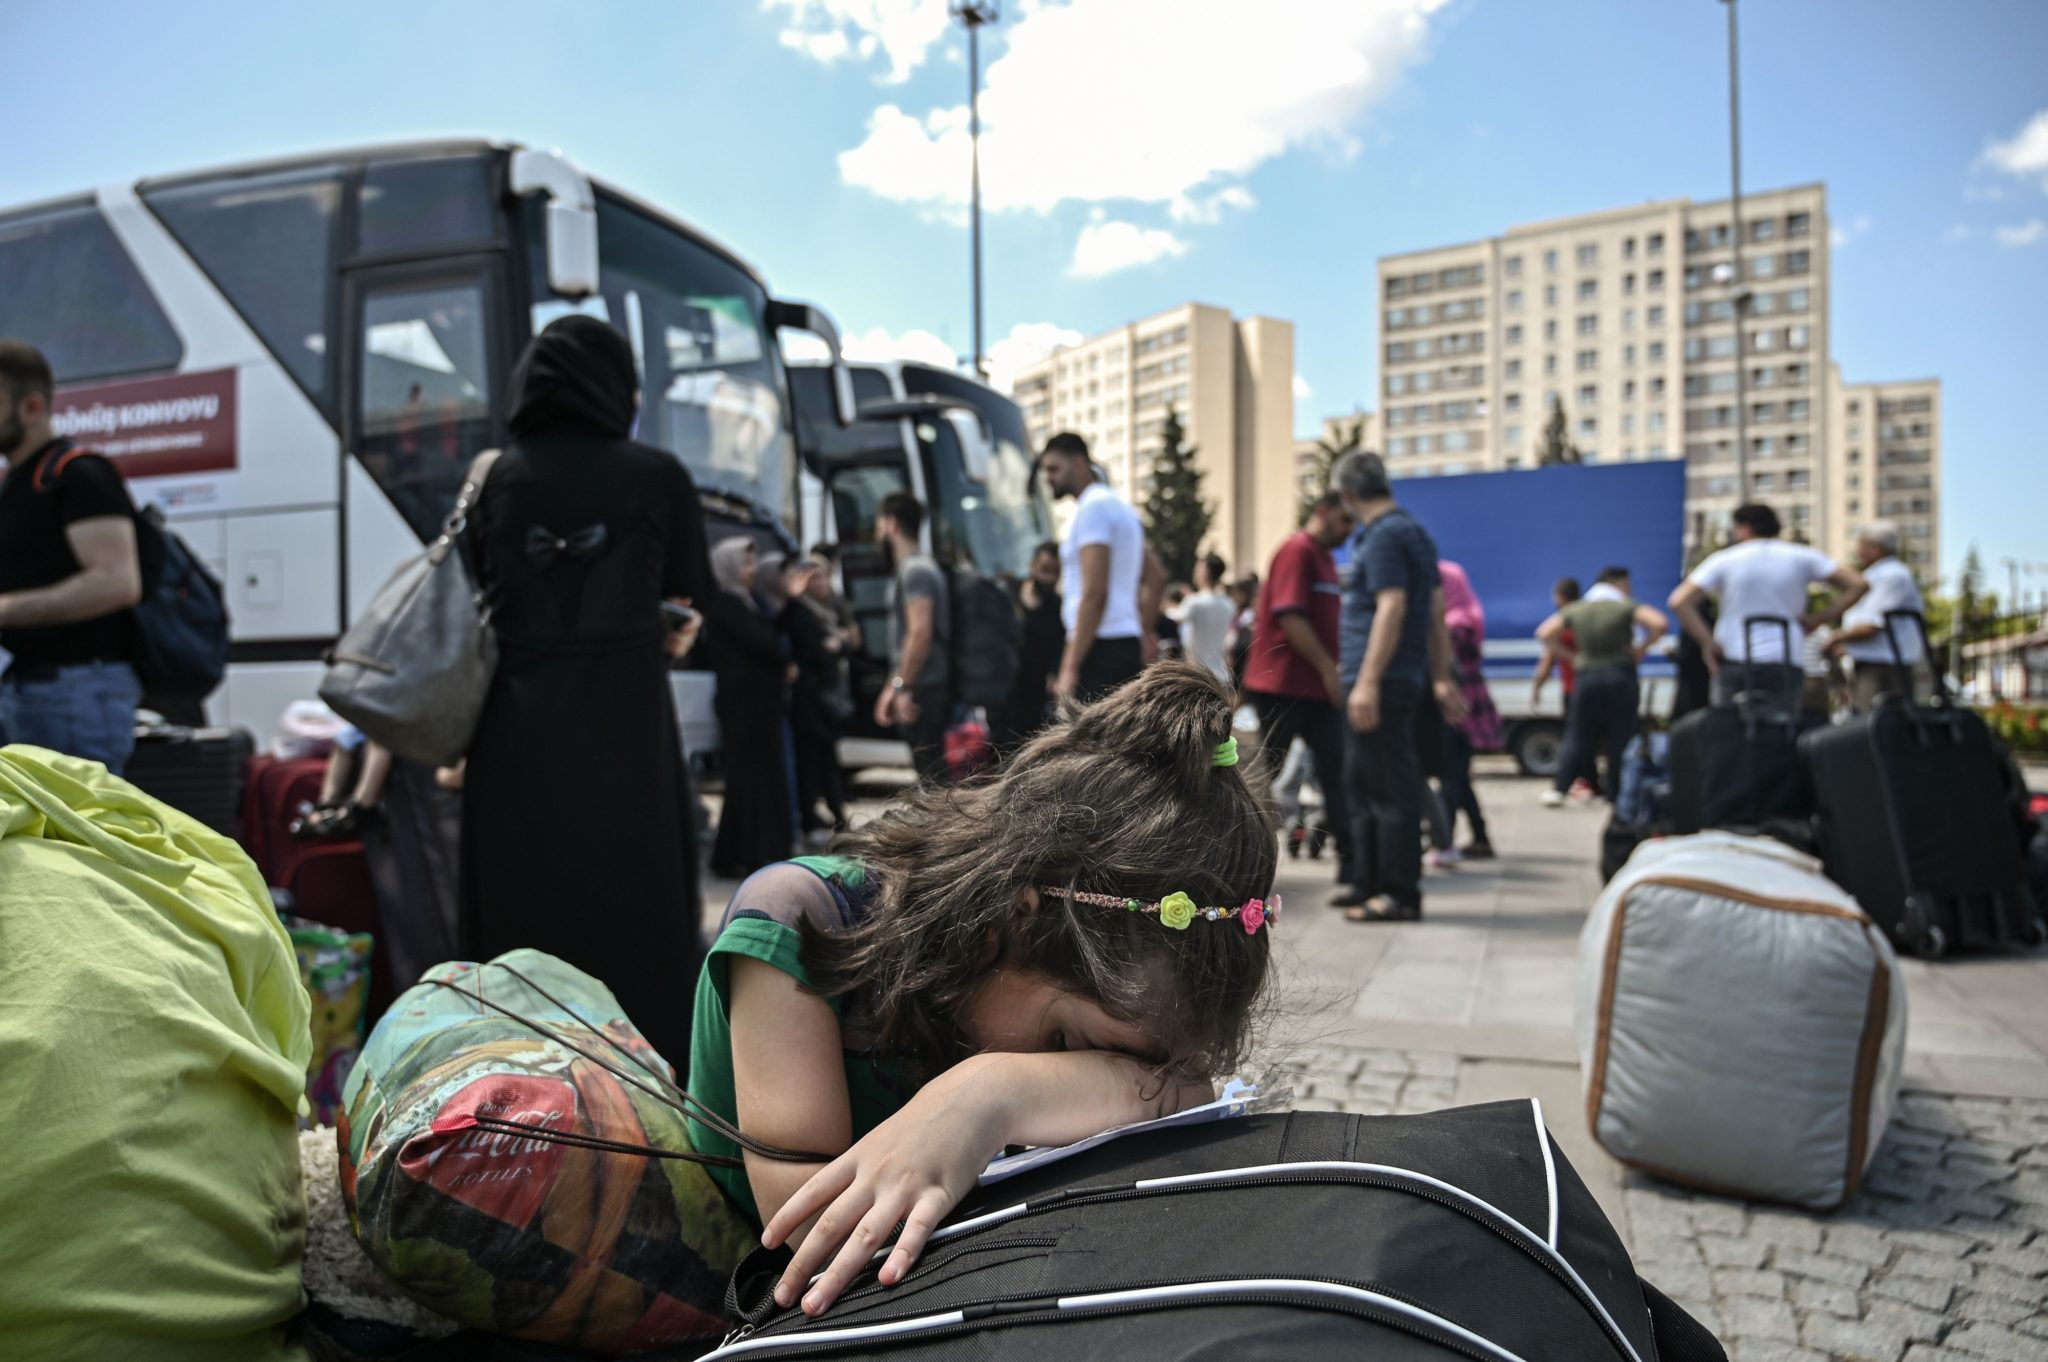 Turkey: Syrians illegally deported into war ahead of anticipated 'safe zone'